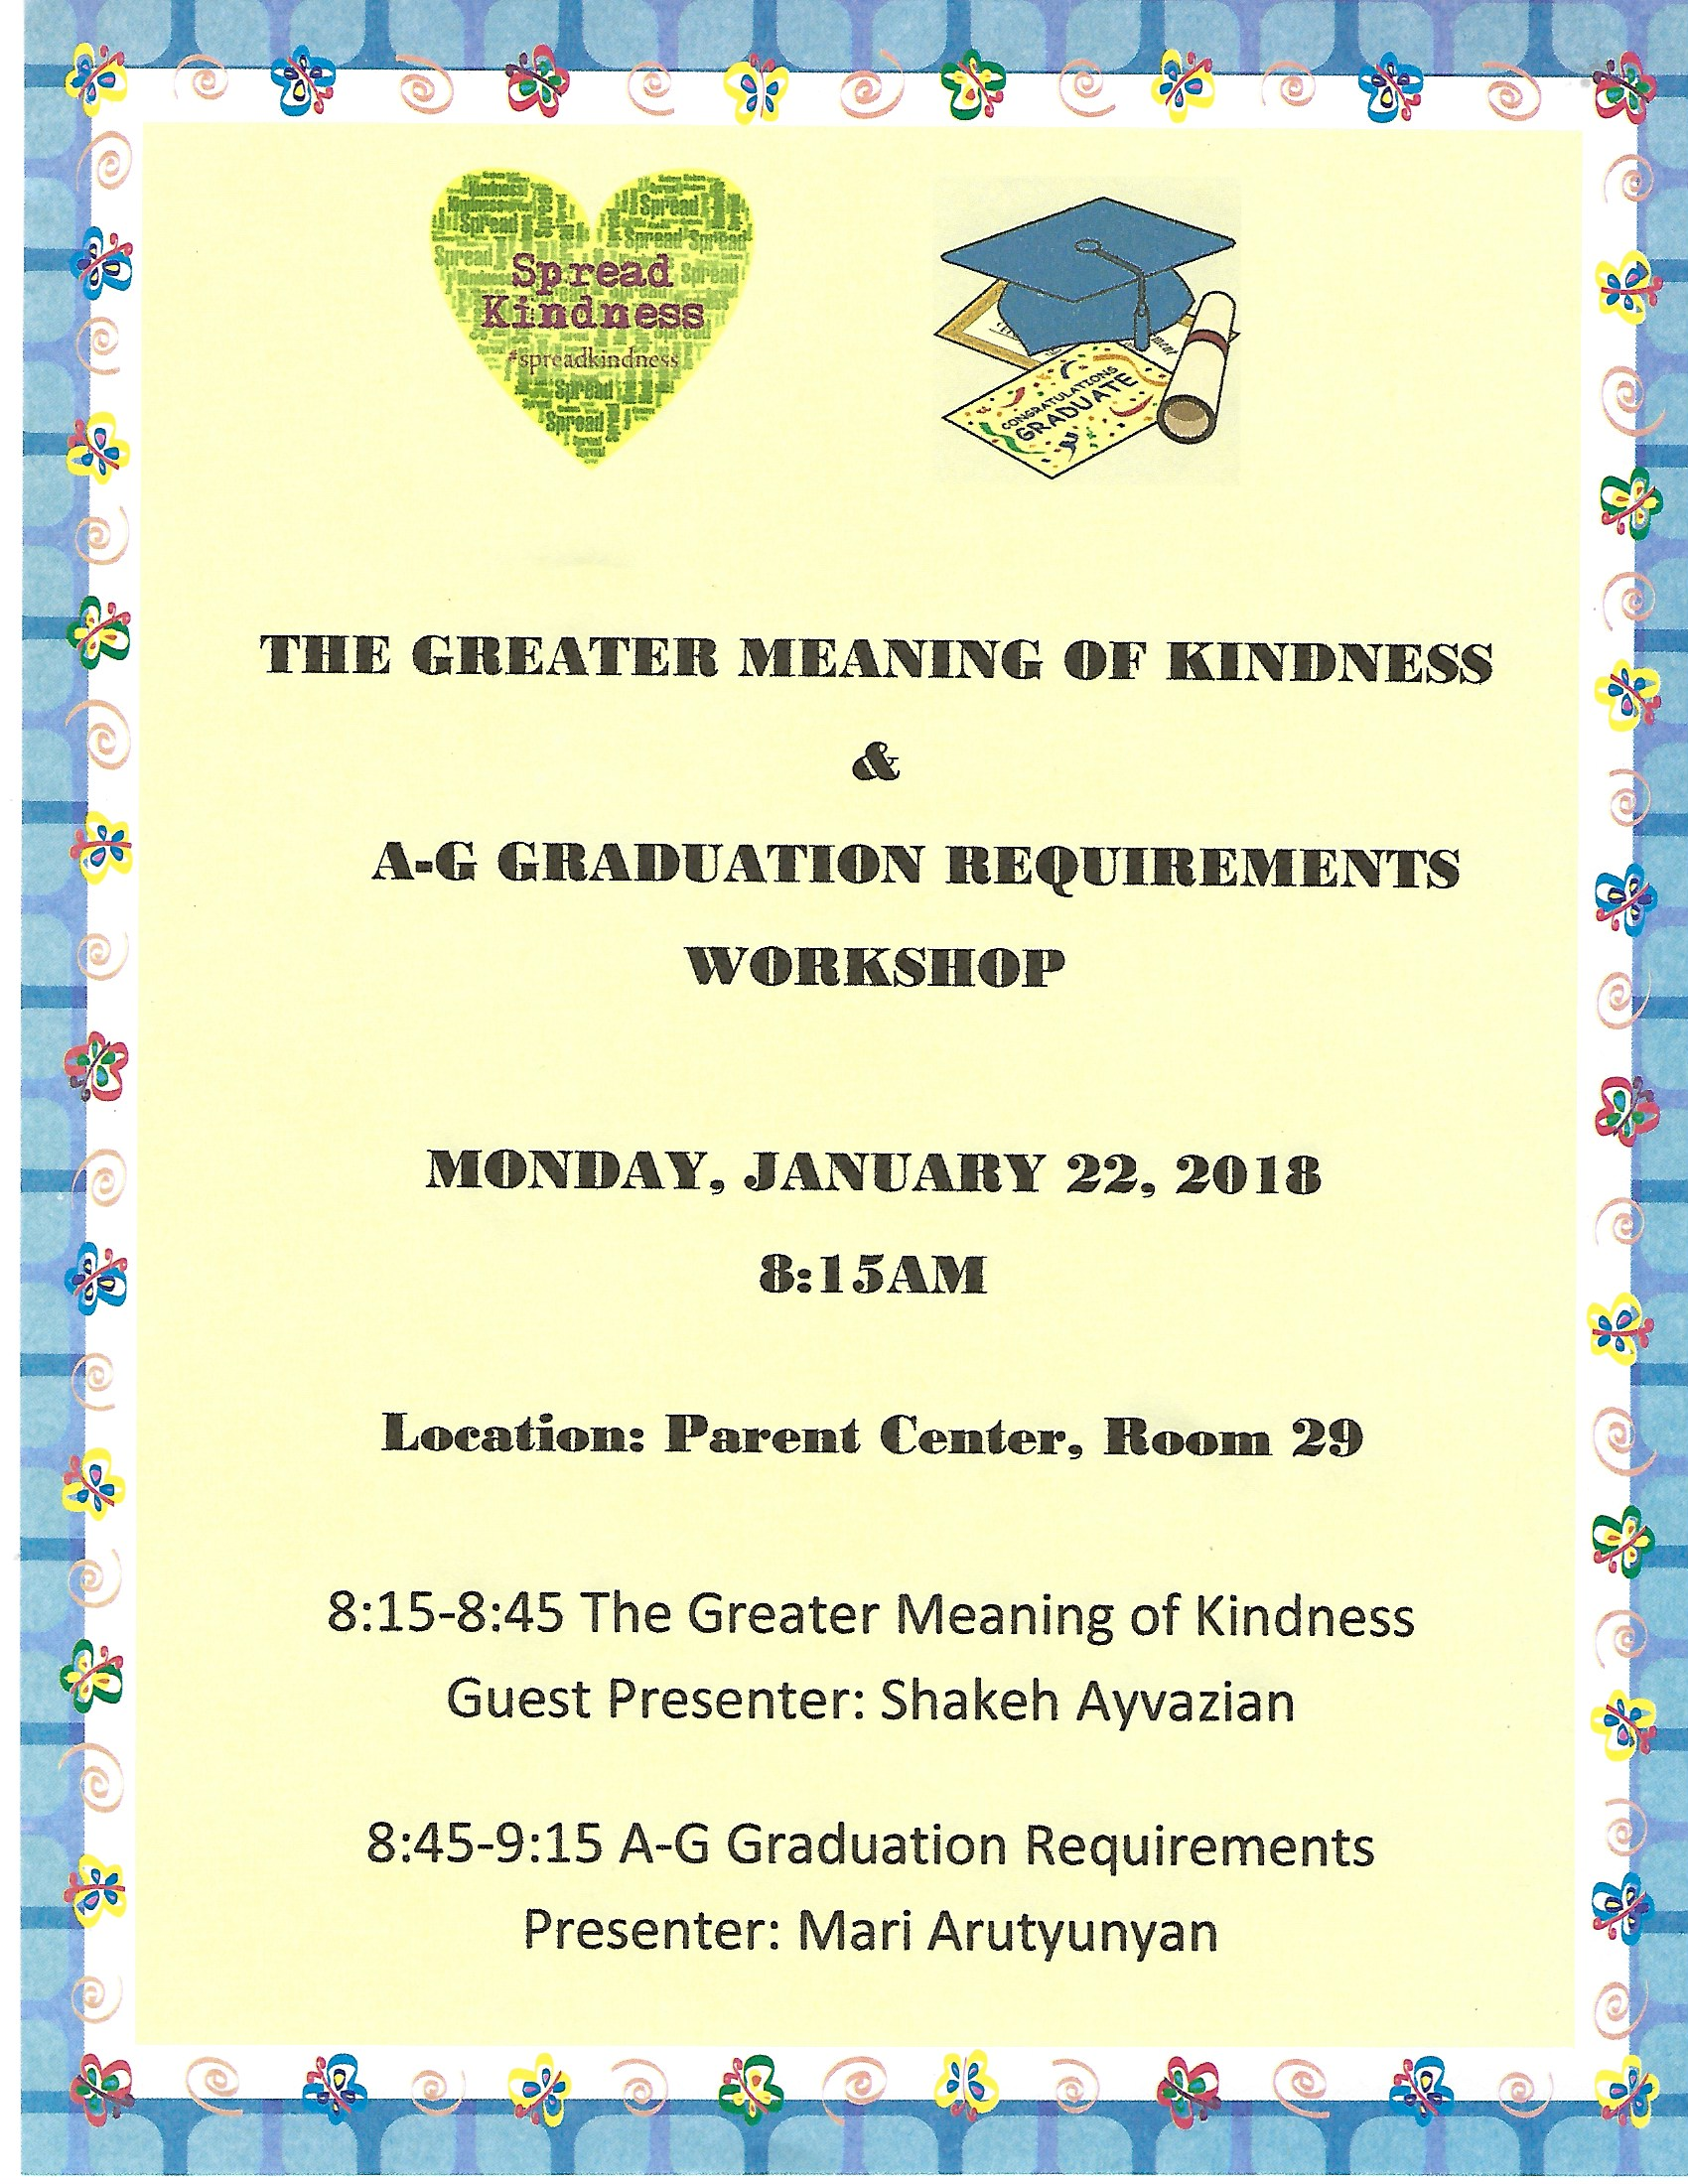 The Greater Meaning of Kindness and A-G Grad Requirements